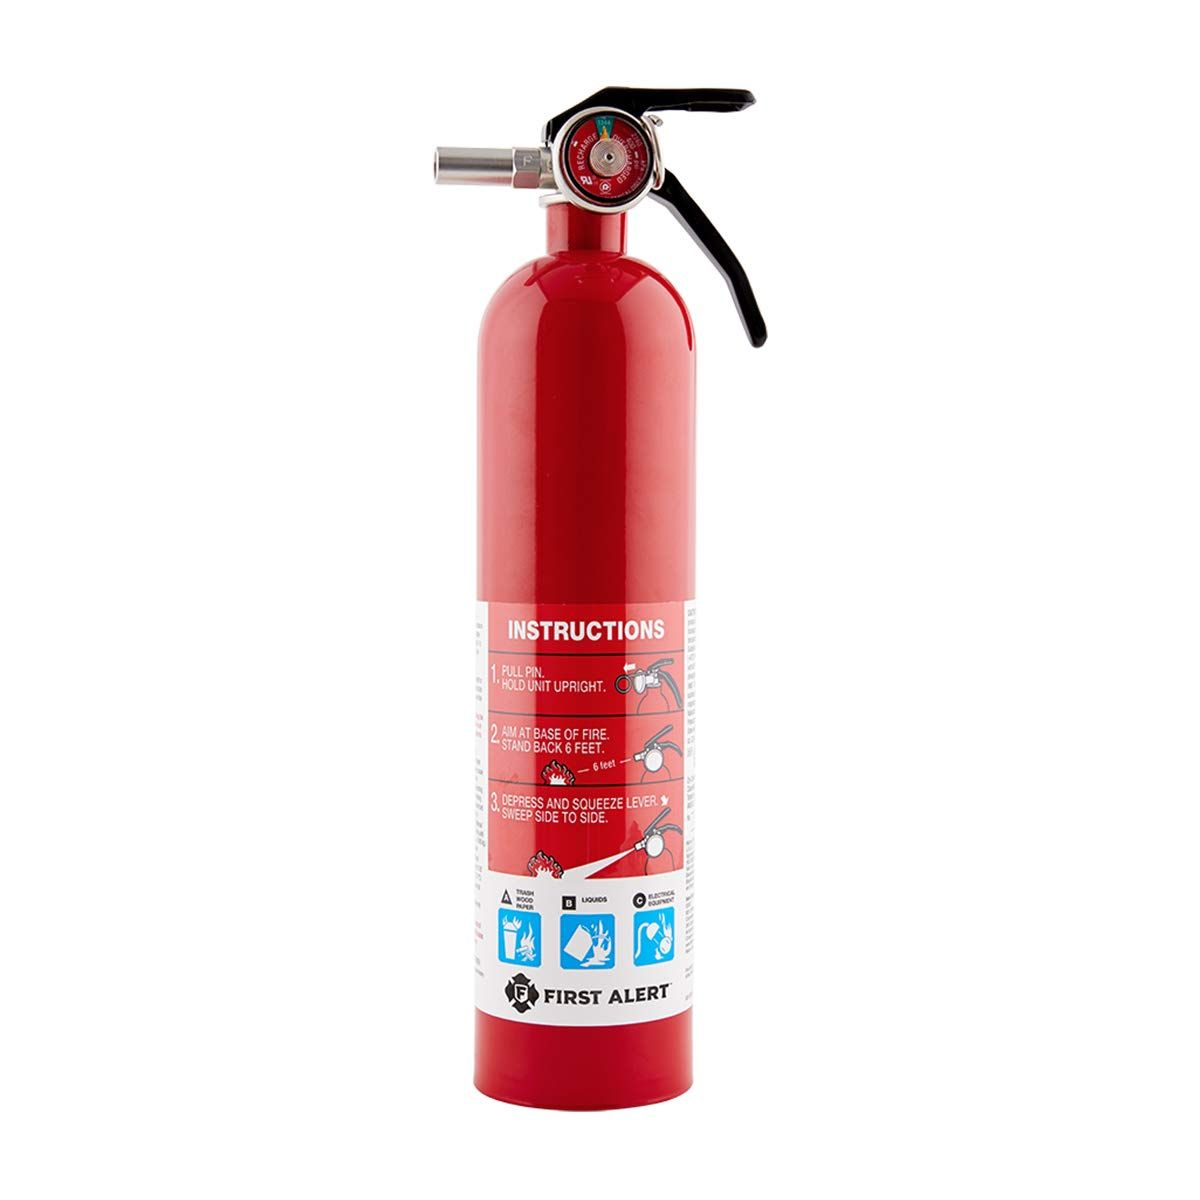 Home Fire Extinguisher At Every Heat Source Https Www Vivabeachlife Com Vacation Rental Home Asp Pagedata Fire Extinguisher Fire Extinguishers Extinguisher